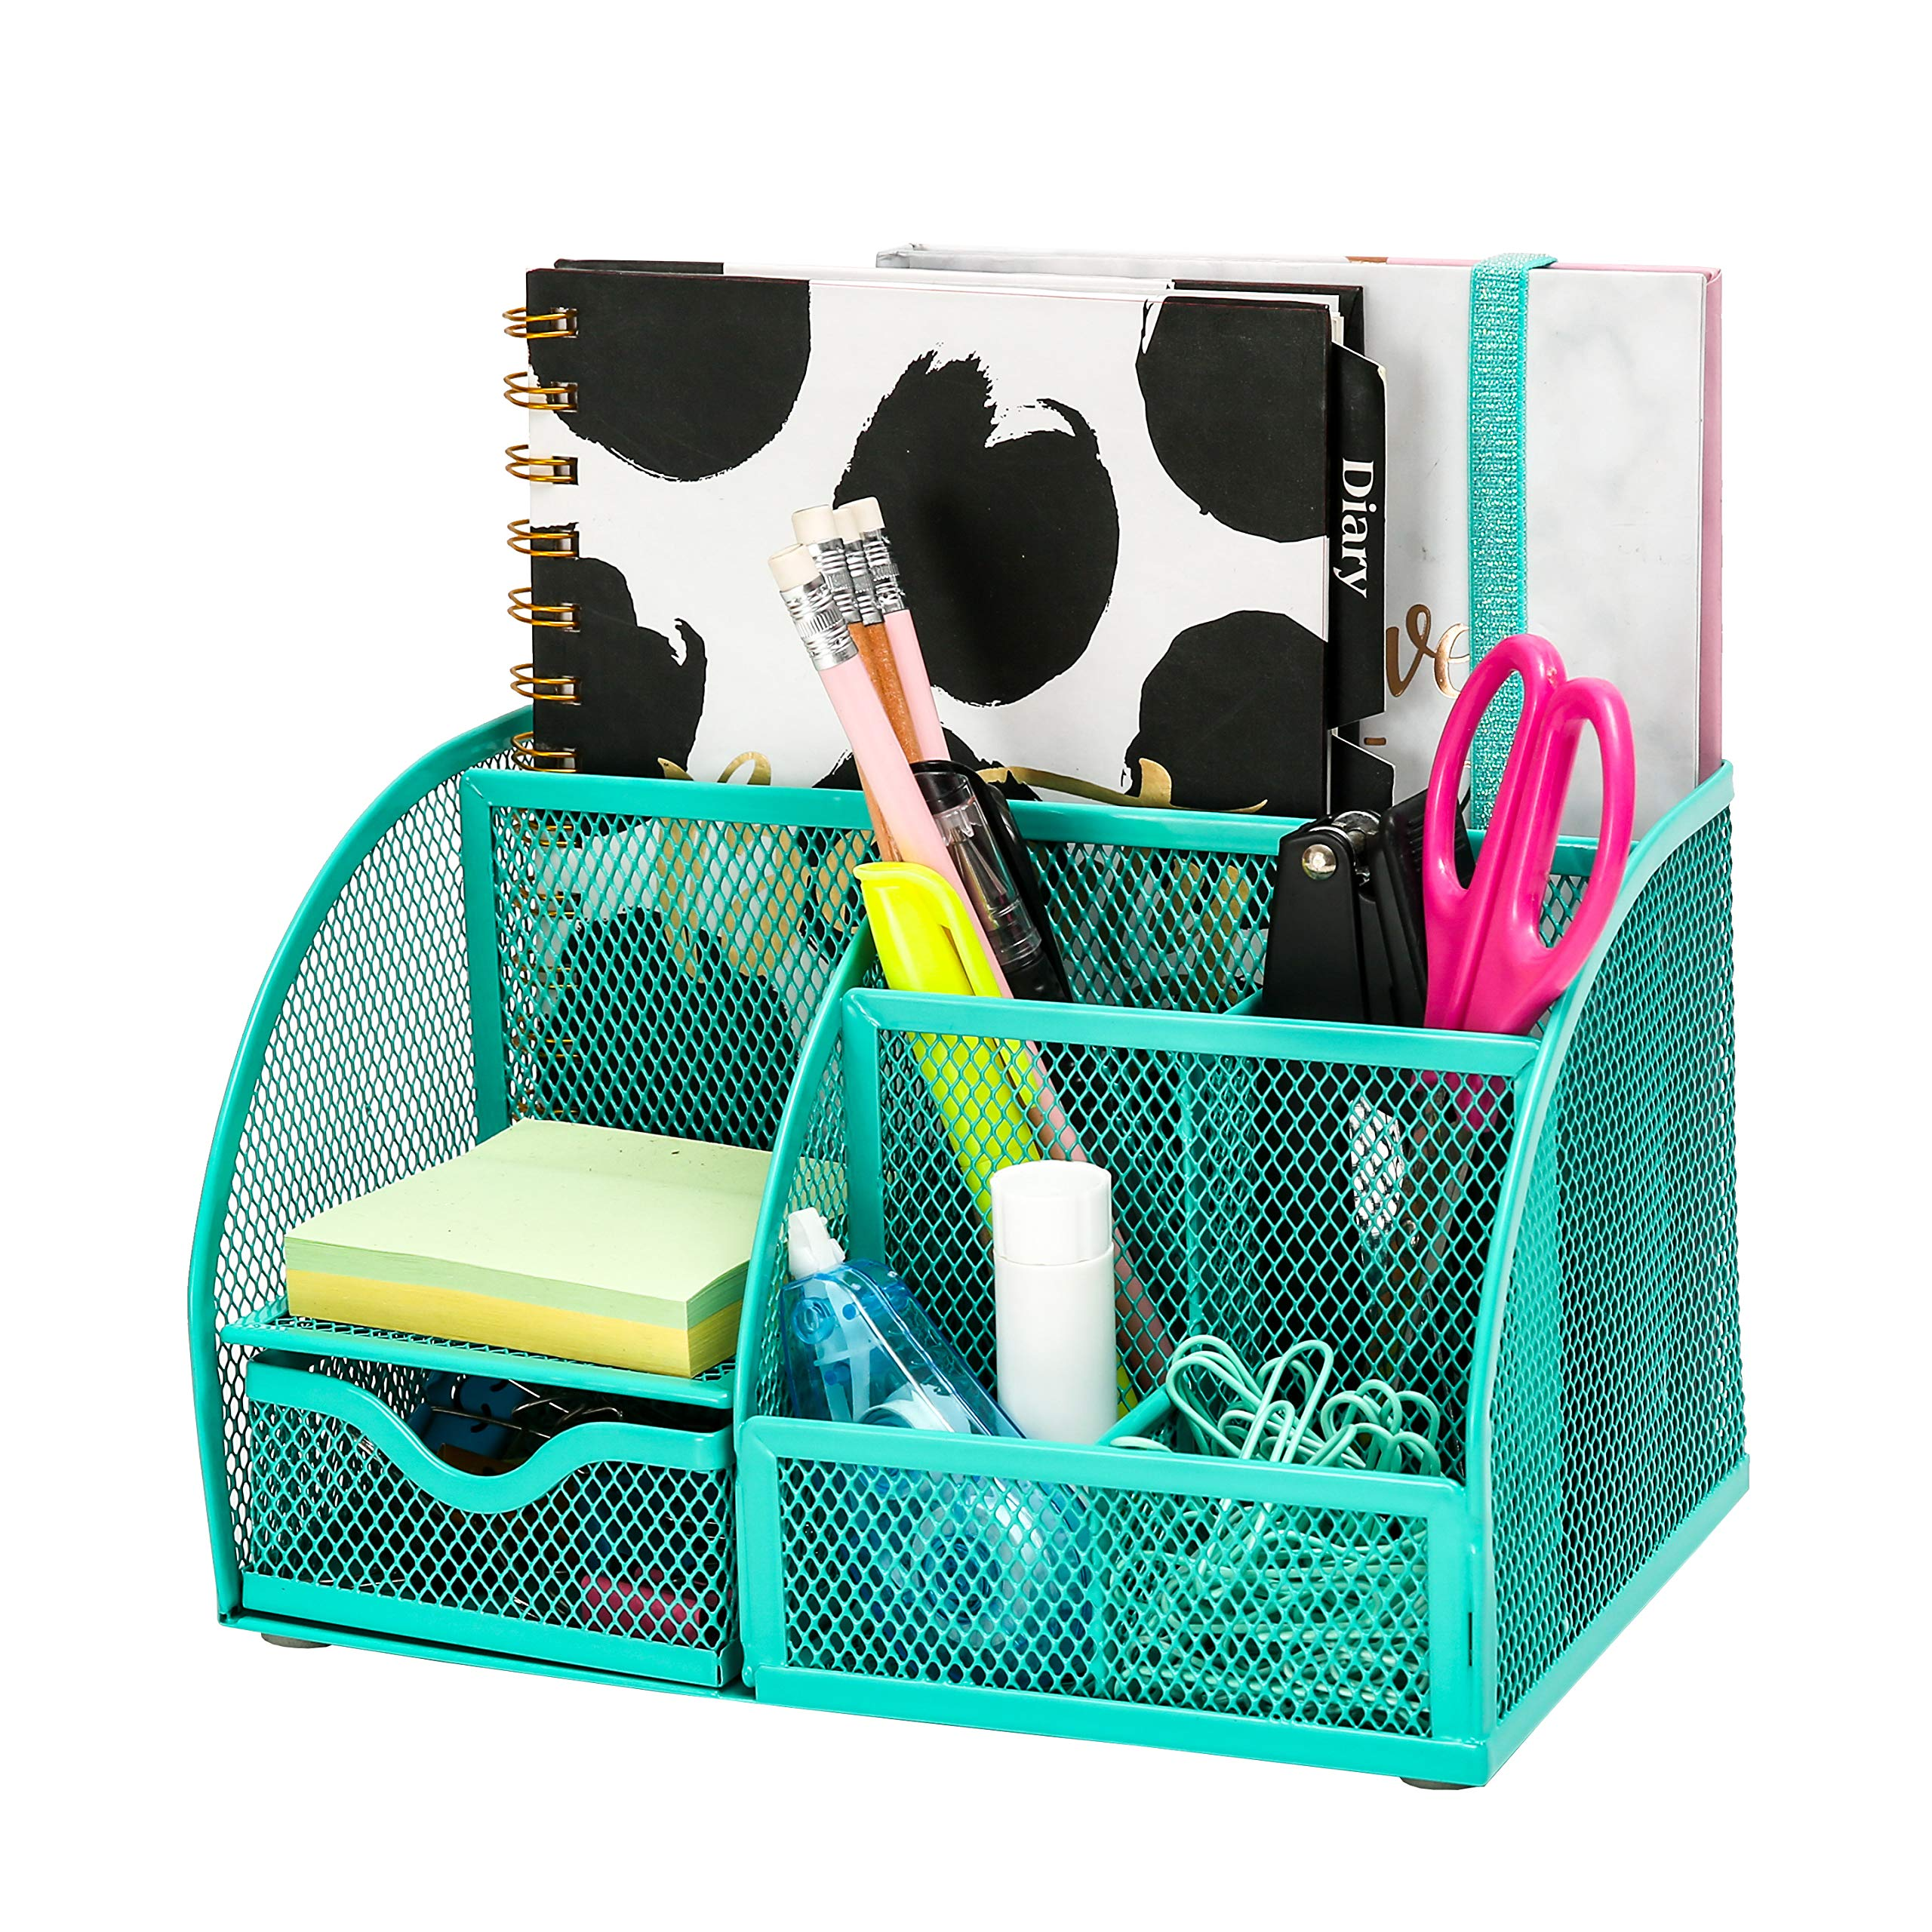 Exerz Mesh Desk Organizer Office with 7 Compartments + Drawer/Desk Tidy Candy/Pen Holder/Multifunctional Organizer Green Color (EX348-GRN)